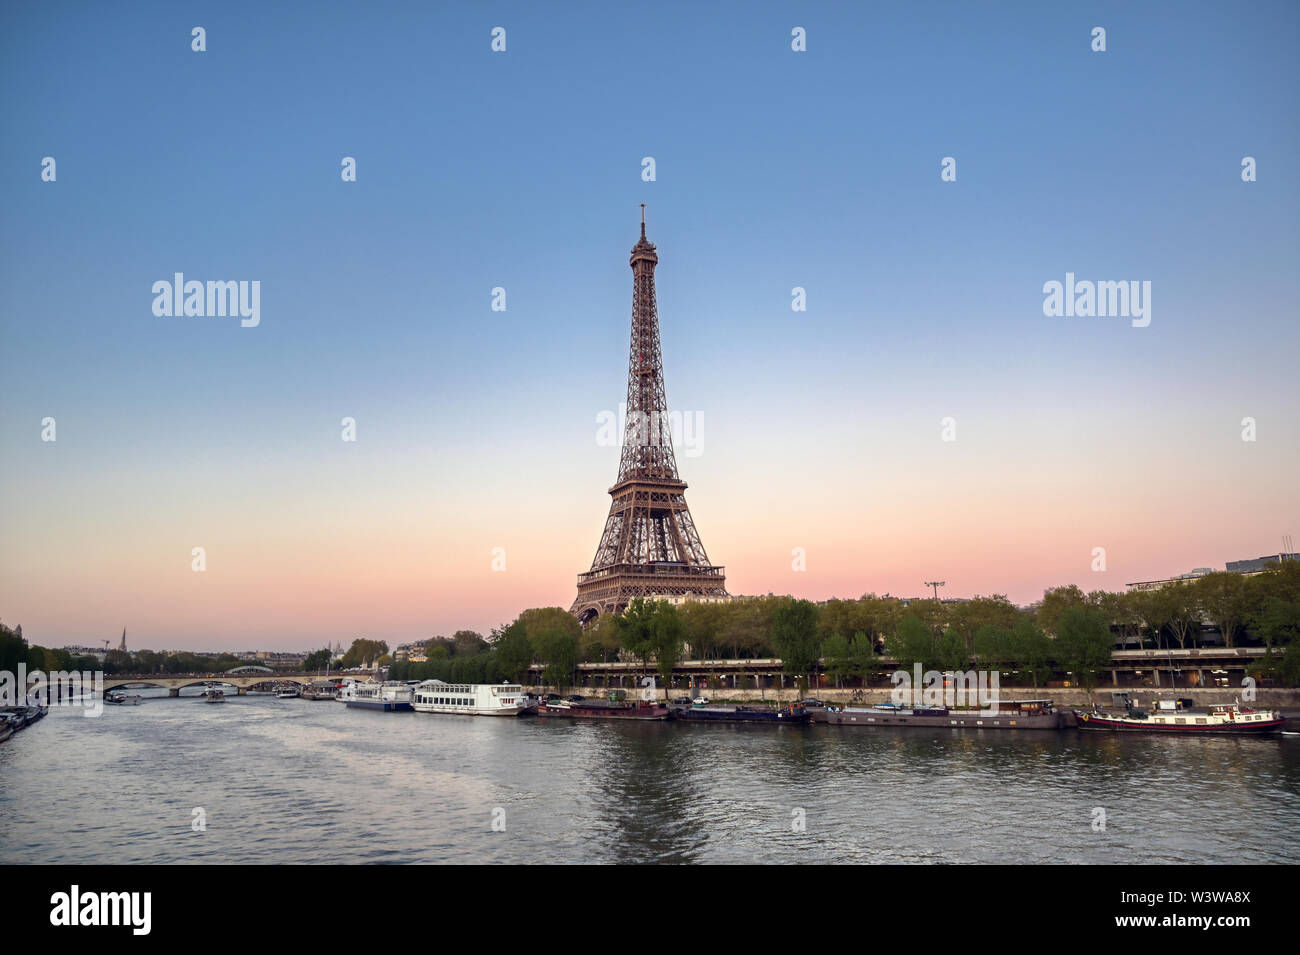 The Eiffel Tower across the River Seine in Paris, France. - Stock Image